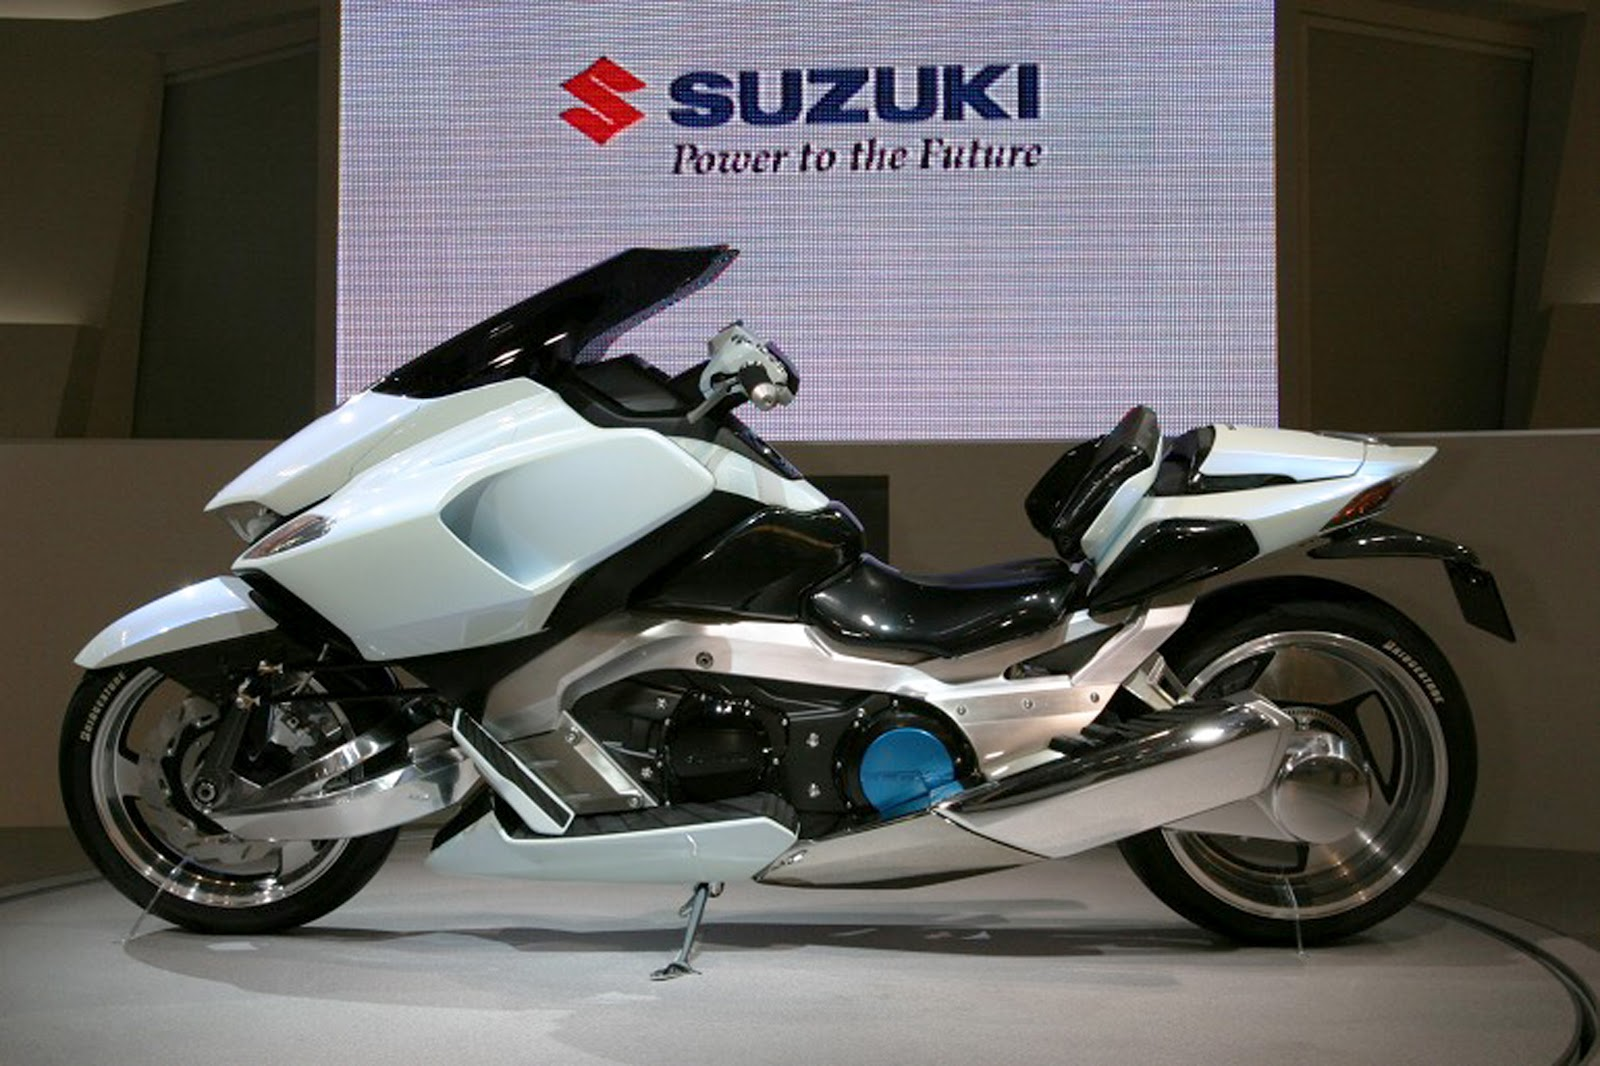 suzuki motorcycle strider concept futuristic motorbike motorcycles electric bike bikes latest hoverbike future motorbikes moto 2003 sci fi redbook riding